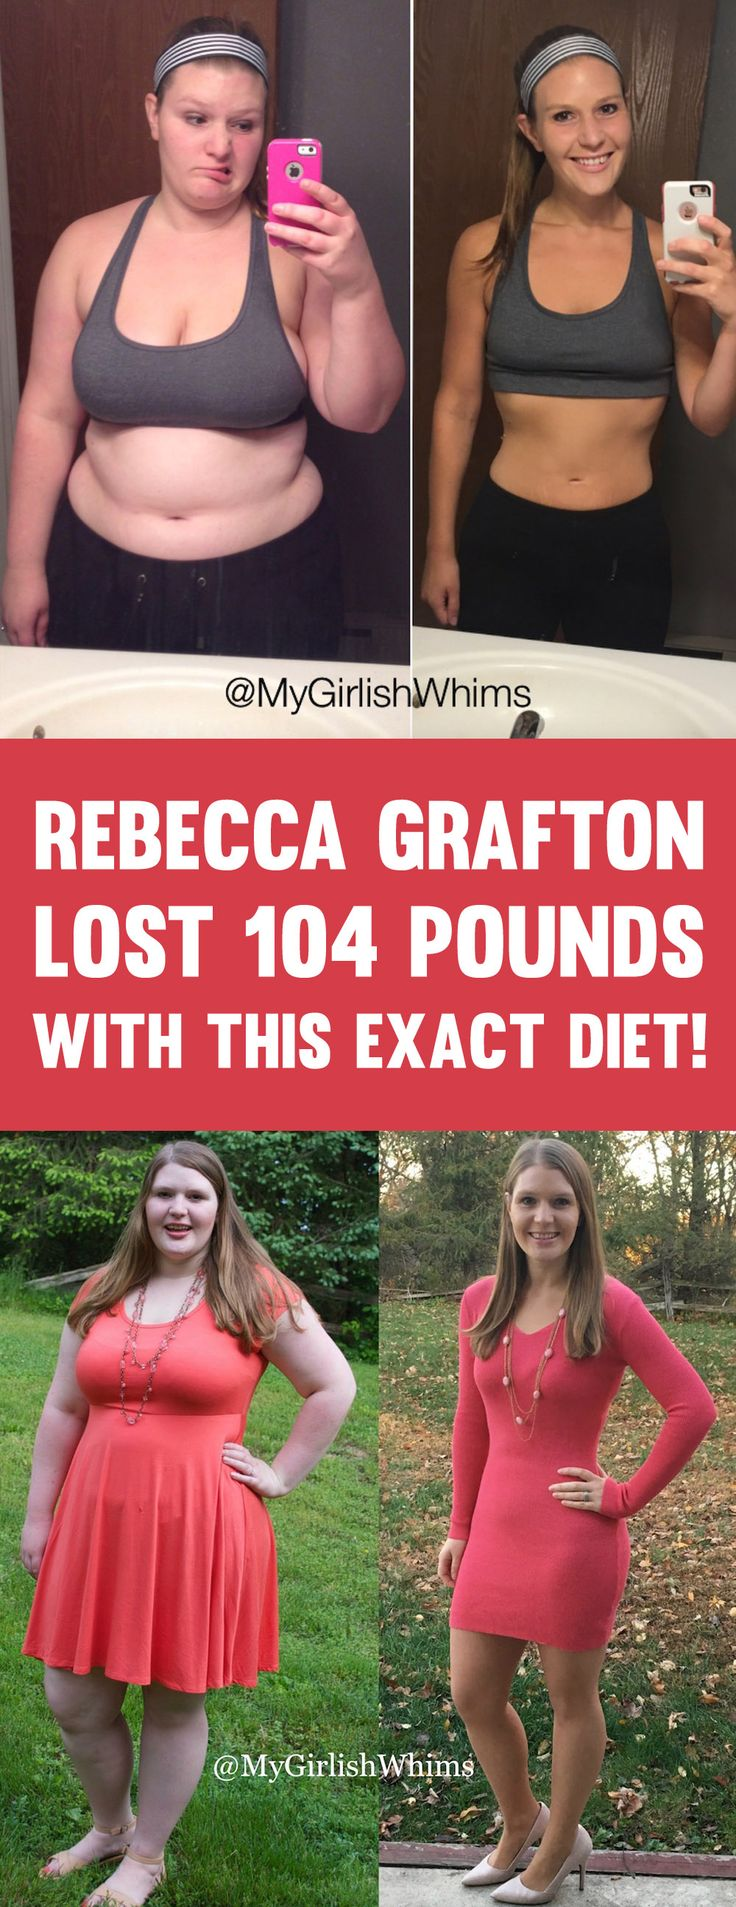 Rebecca Grafton aka MyGirlishWhims started her weight loss journey at over 250 pounds. She organised a trip to Jamaica and knew that she would look back on her time with regret if she went at the size she was at. This target provided a new level of motivation for Rebecca and she overhauled her diet …